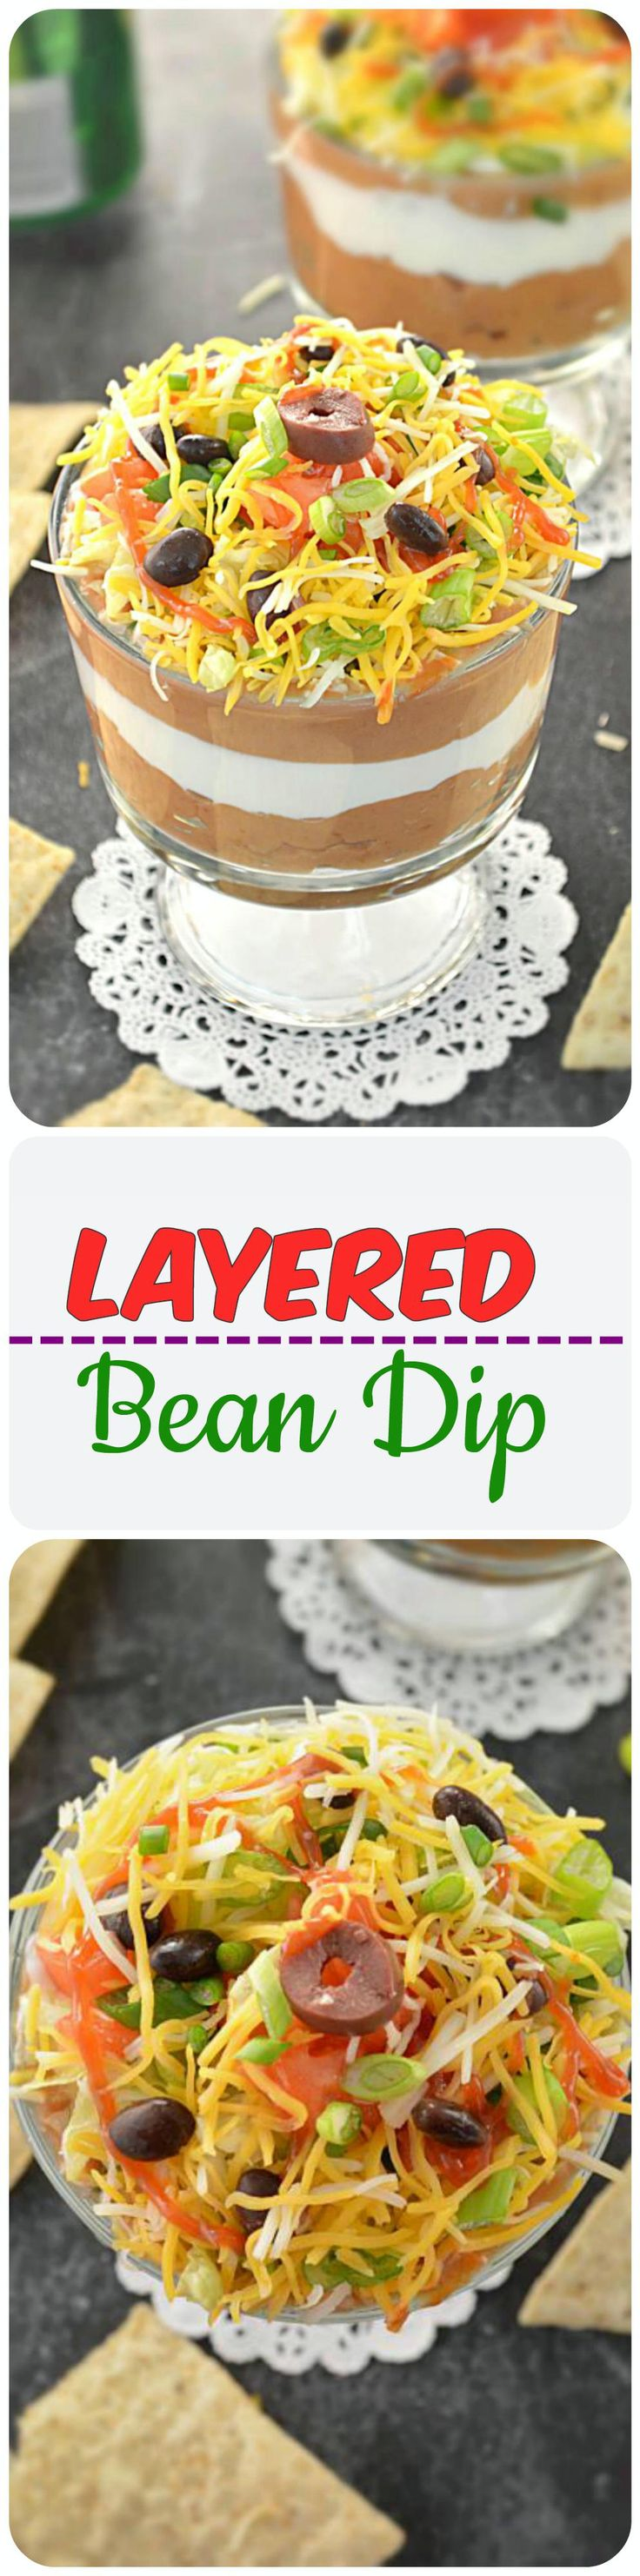 A perfect veggie bean dip for next dinner party or game day. An easy and delicious crowd pleaser recipe ready in 20 minutes! Bring it out to the table, grab a bag of Nachos/chips and see it disappear!!